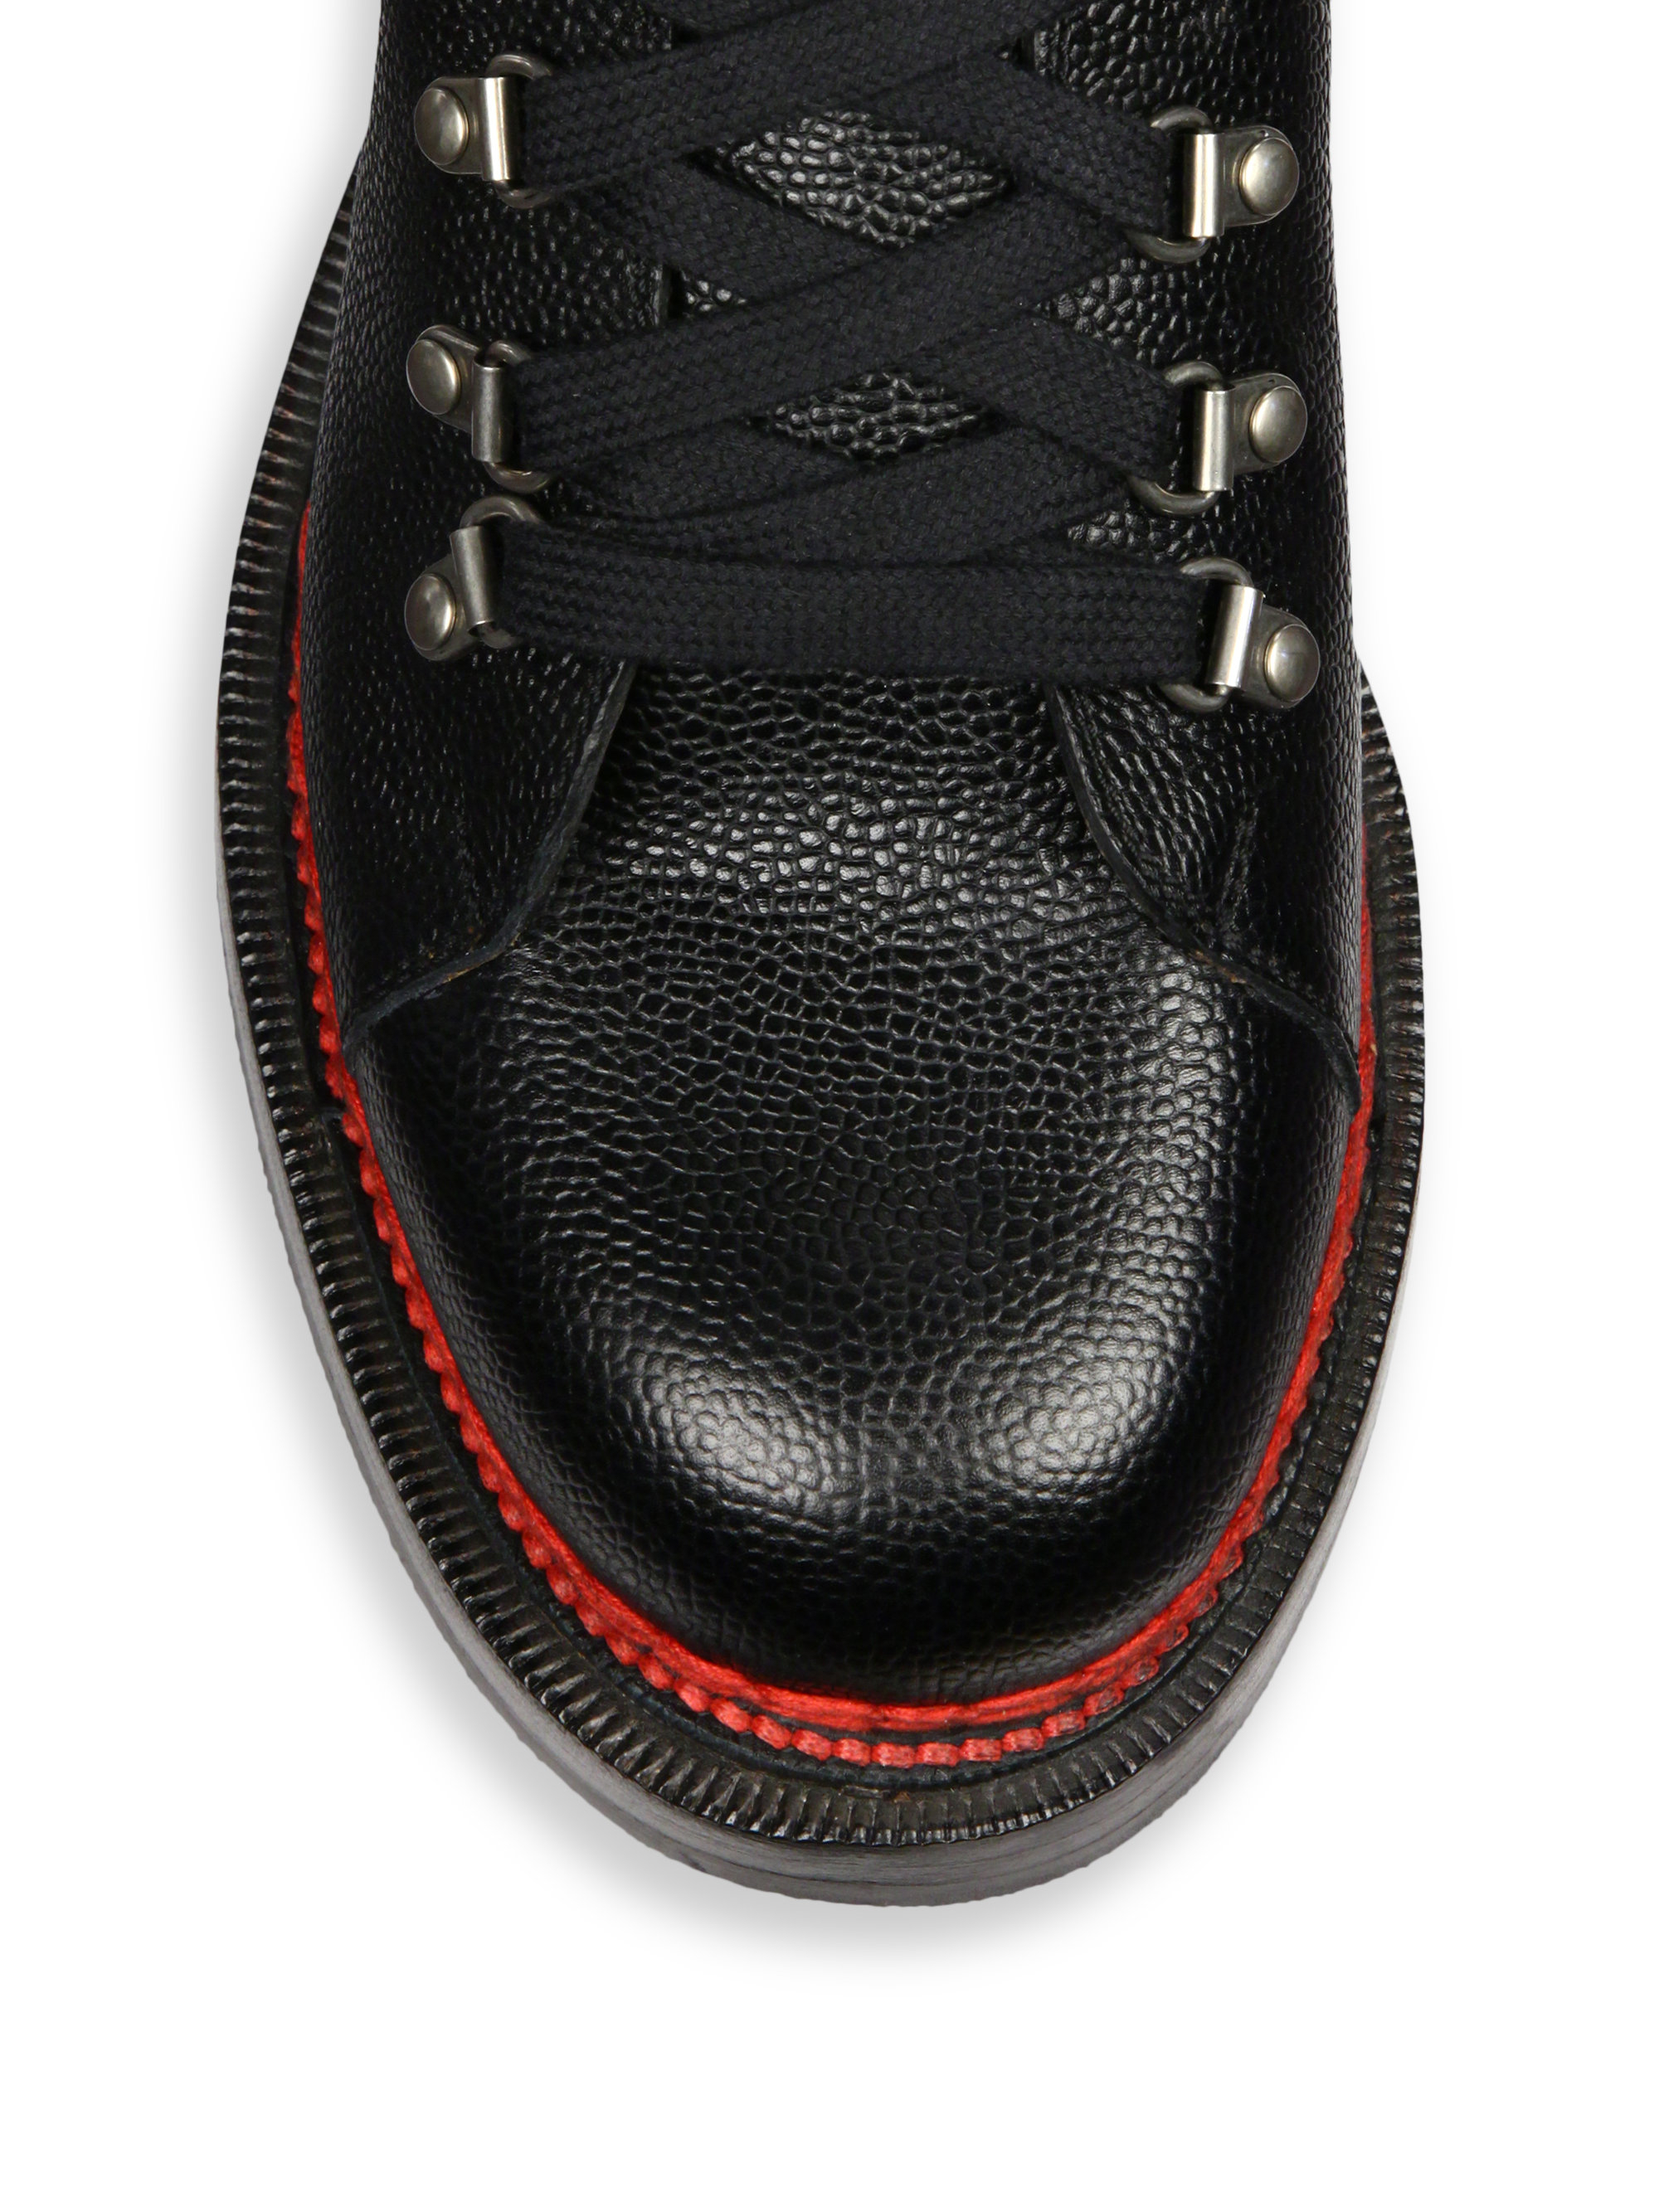 75bc6a533c98 Lyst - Gucci Tracker Lace-Up Leather and Suede Boots in Black for Men